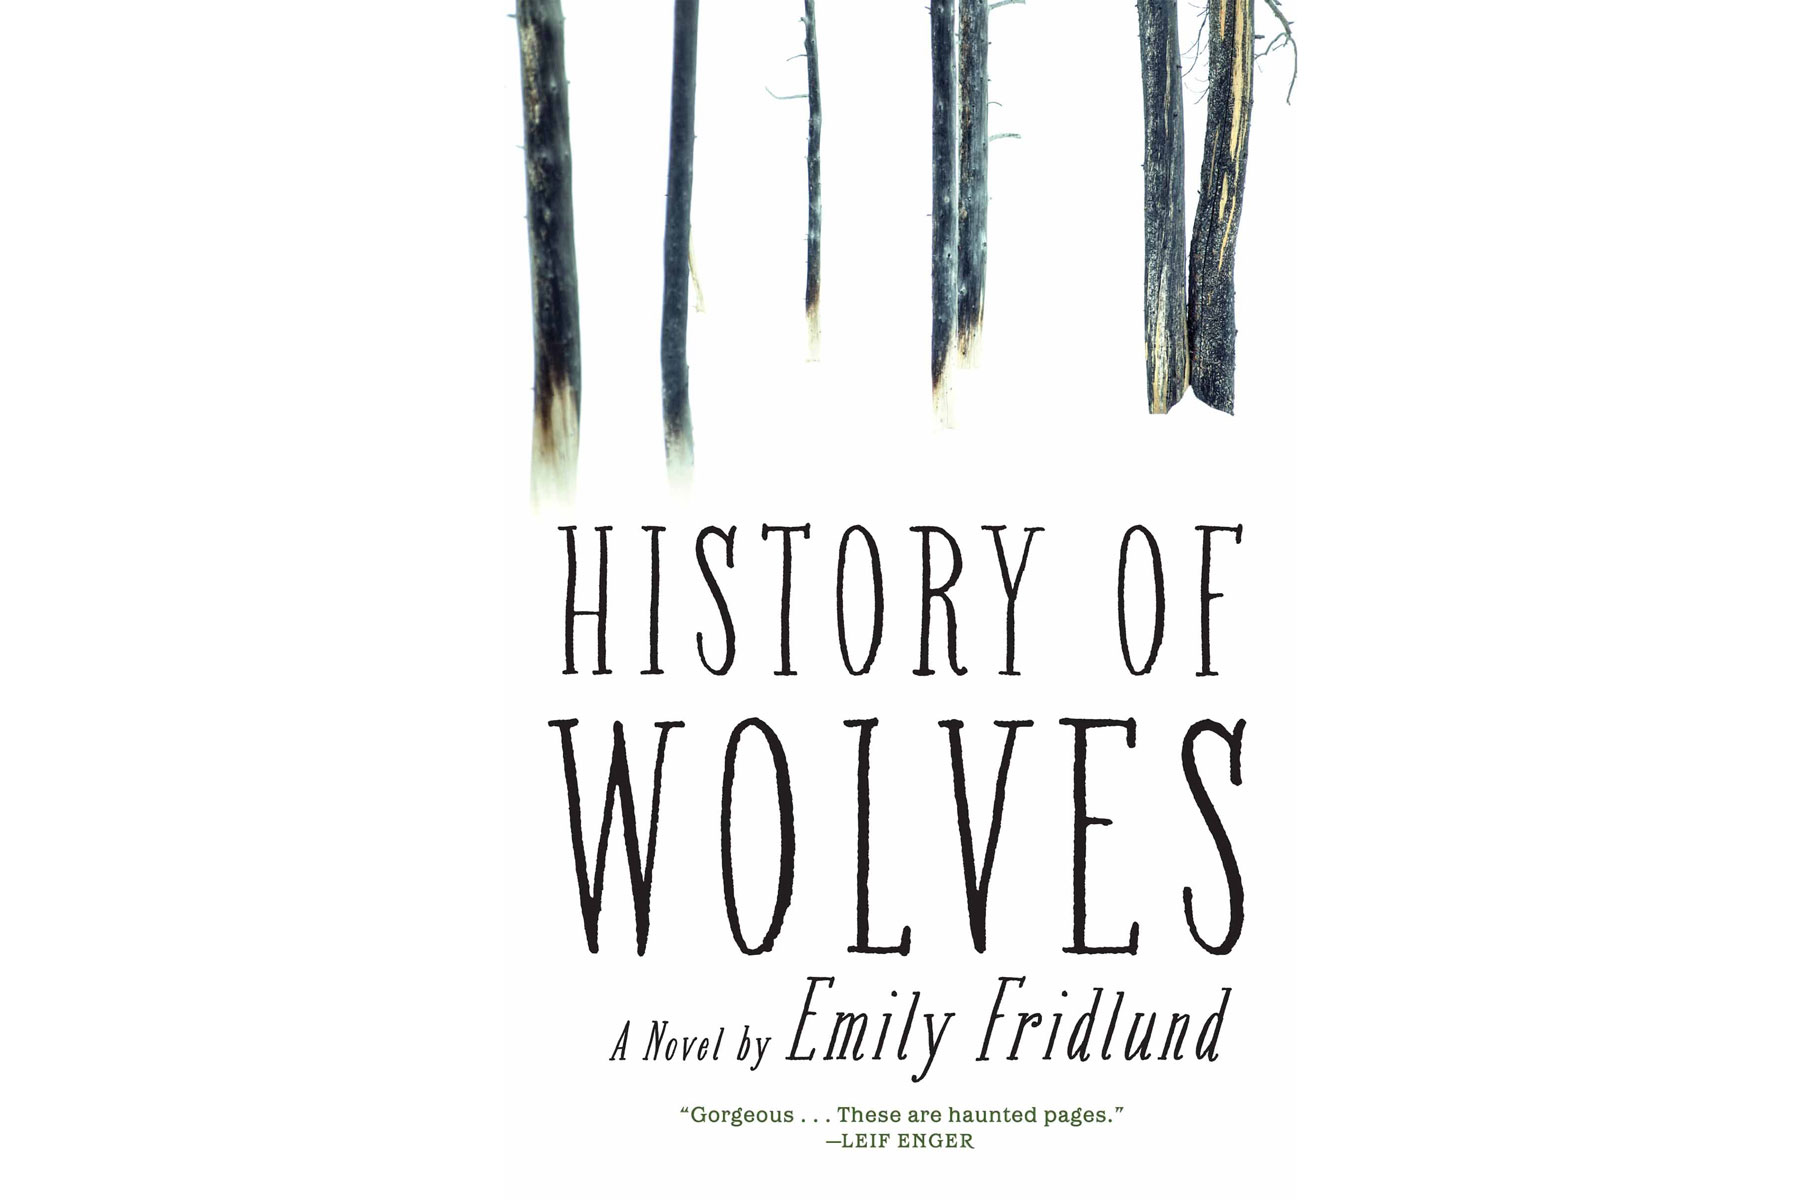 A History of Wolves, by Emily Fridlund